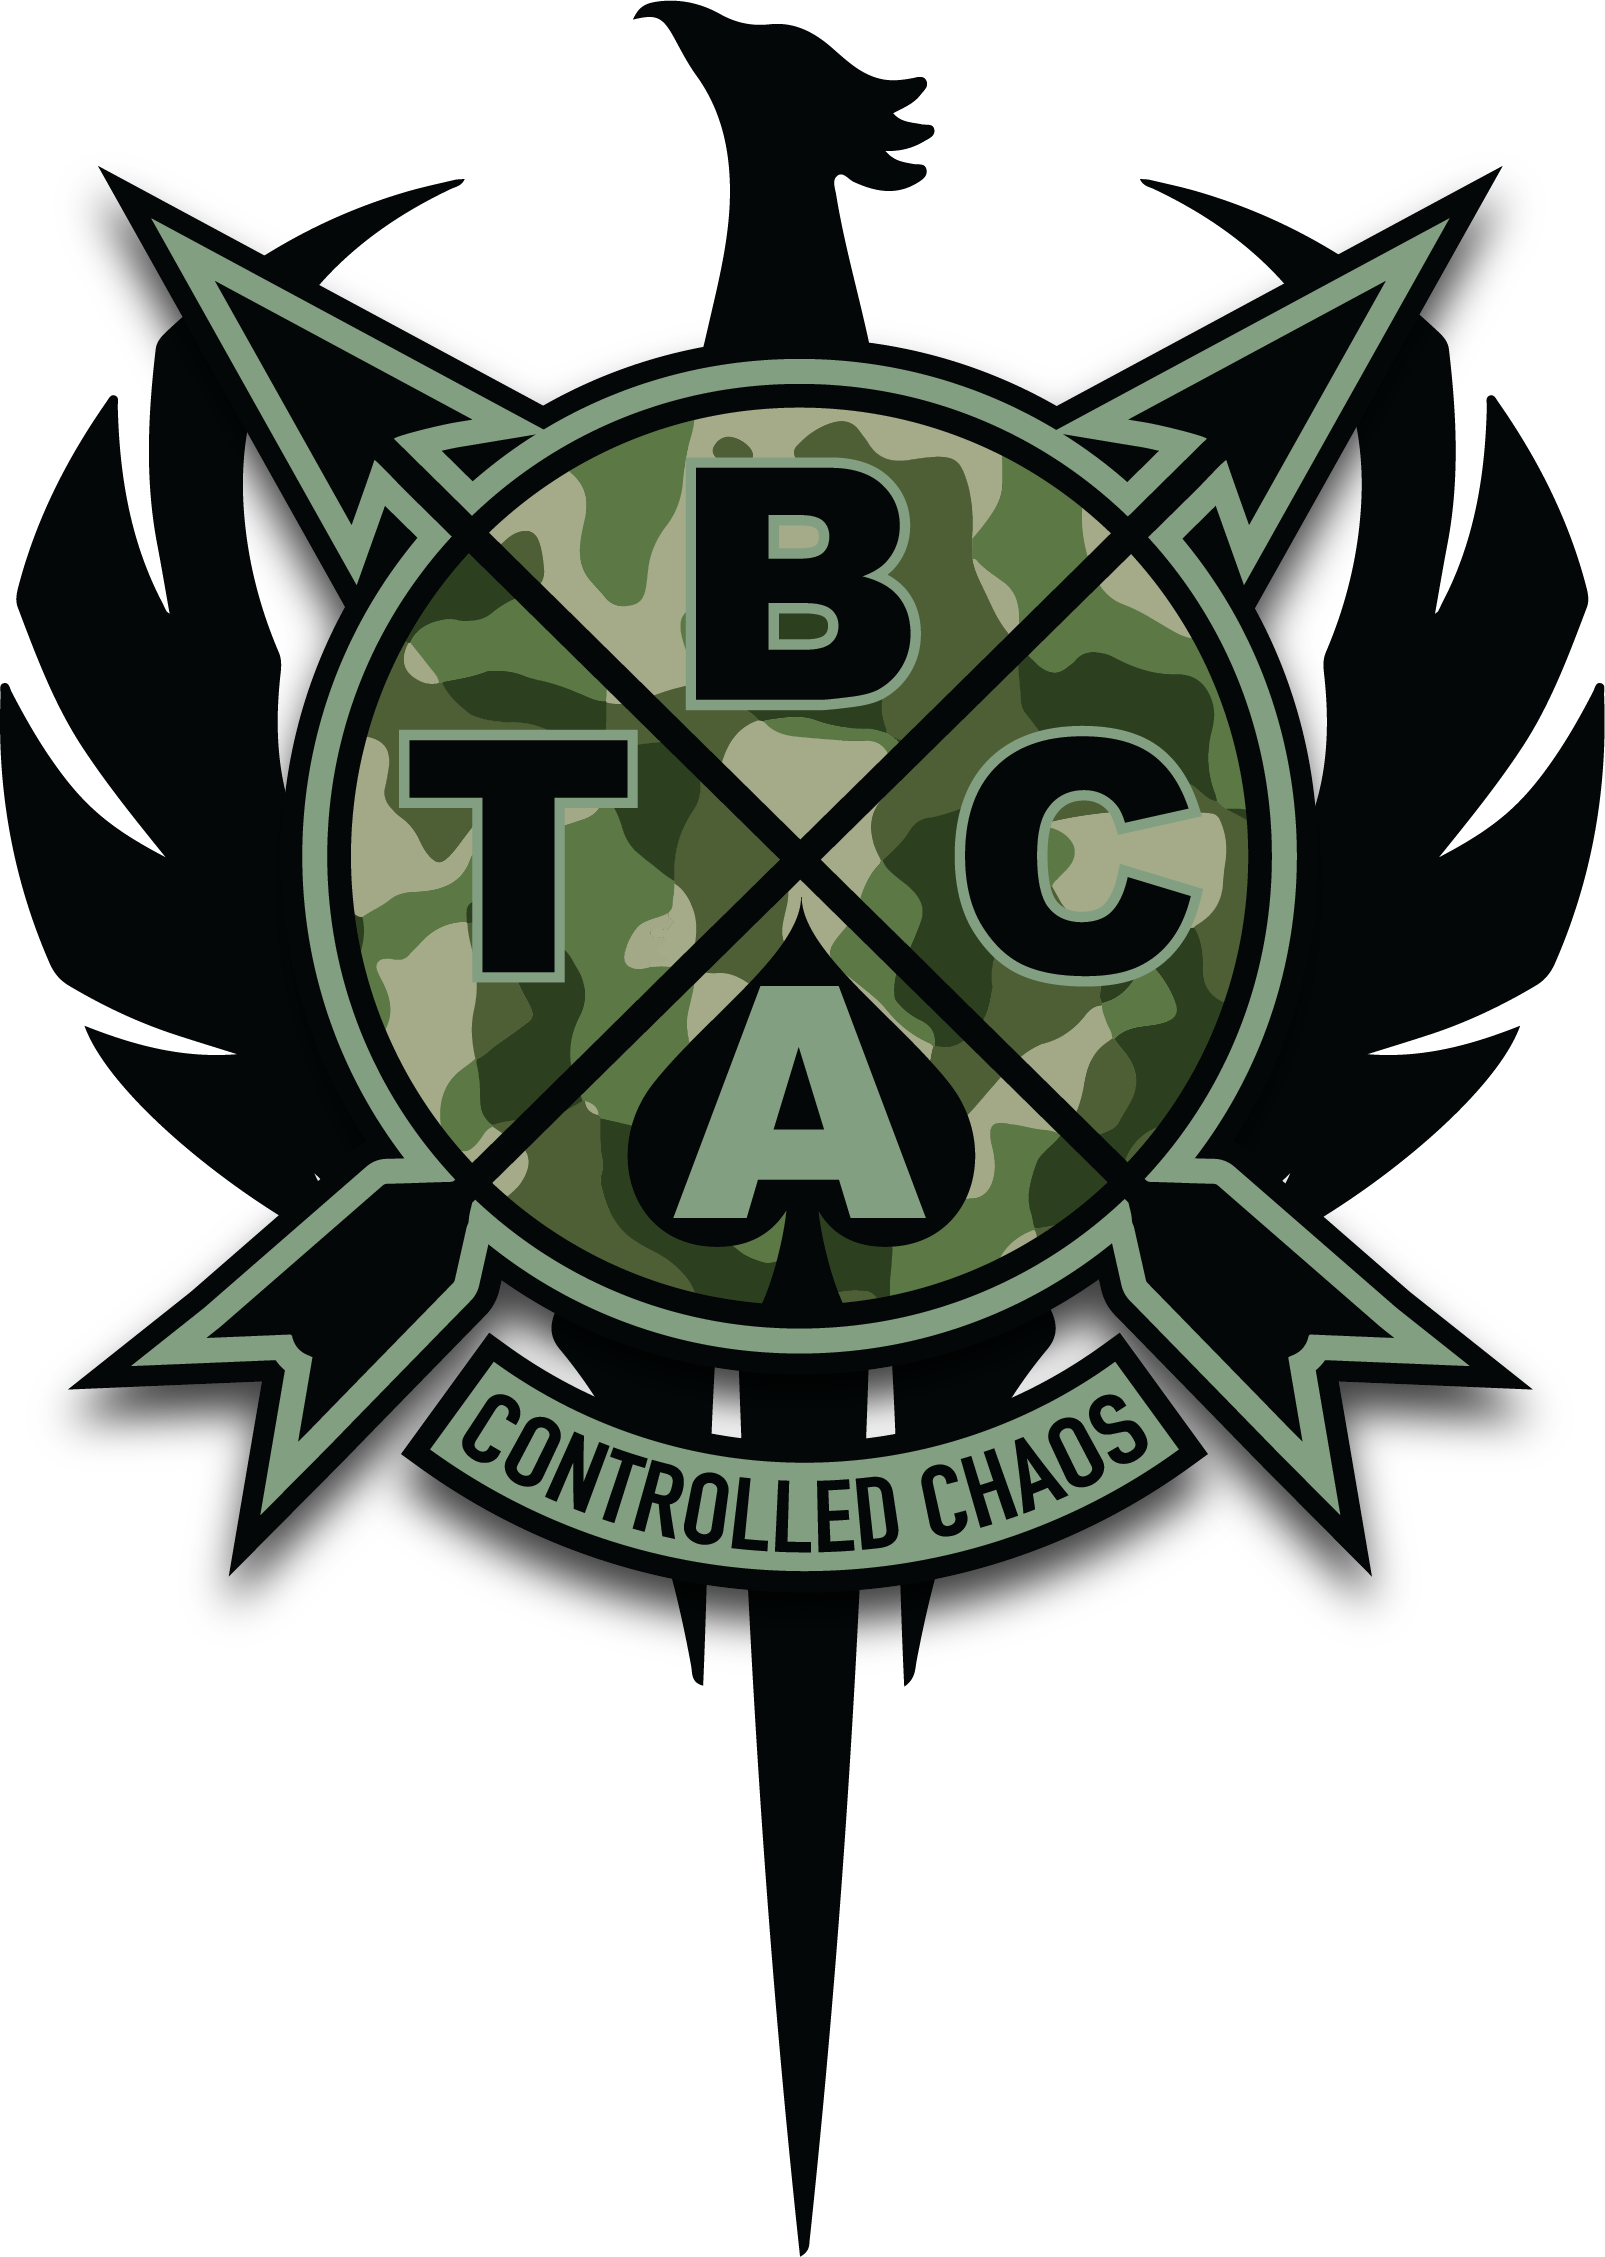 BTAC Tactical Training and Consulting